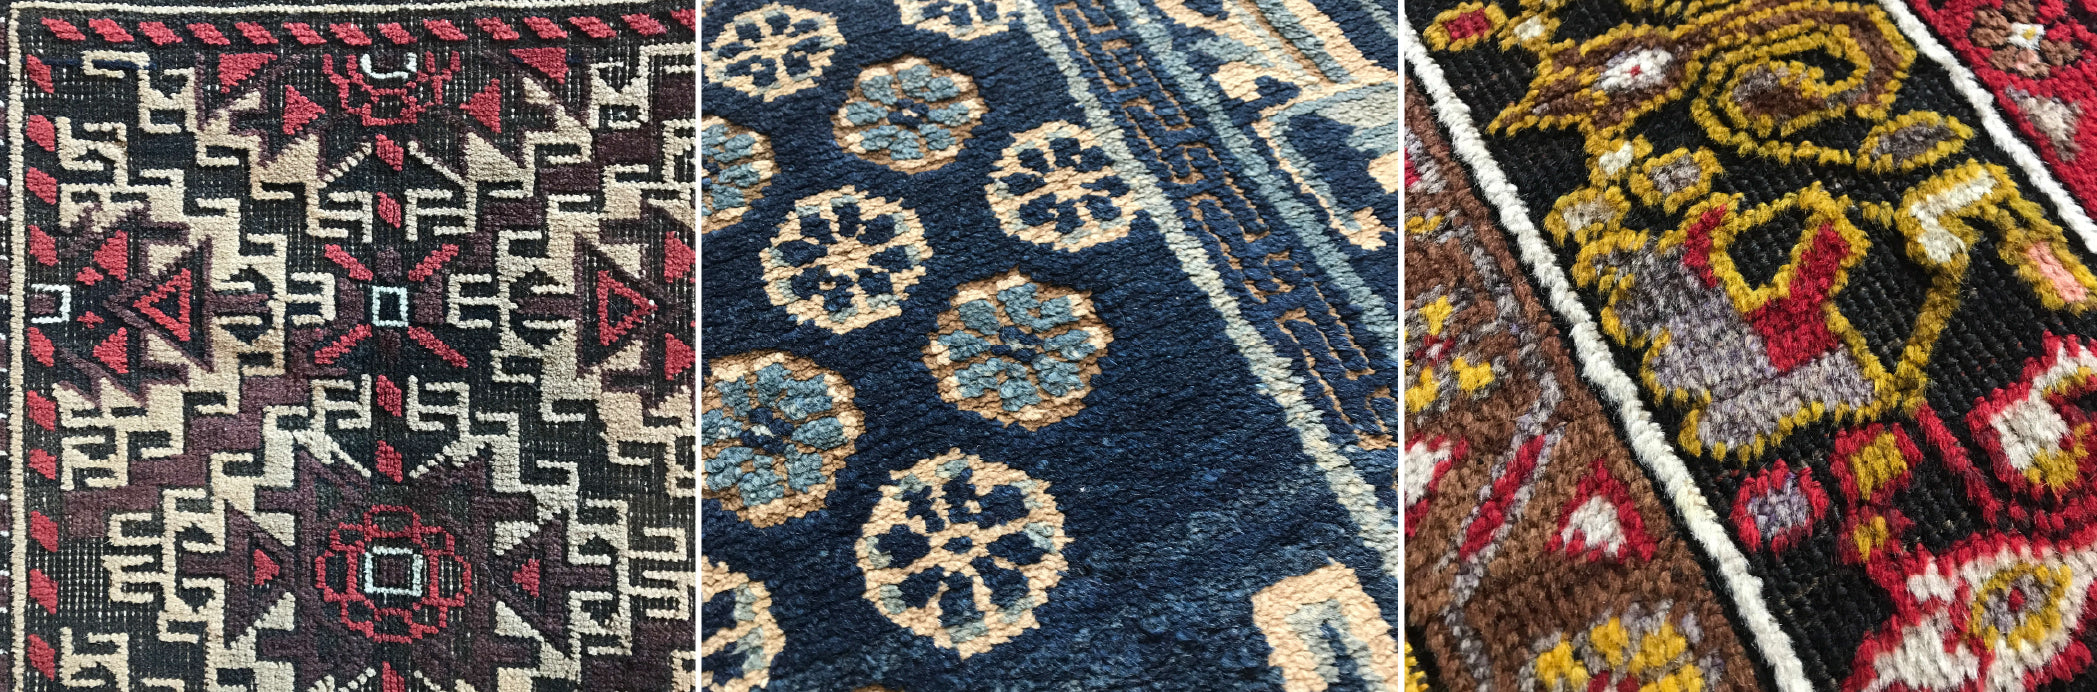 Three examples of oxidation in antique rugs, Baluch, Ningxia & Turkish Maden